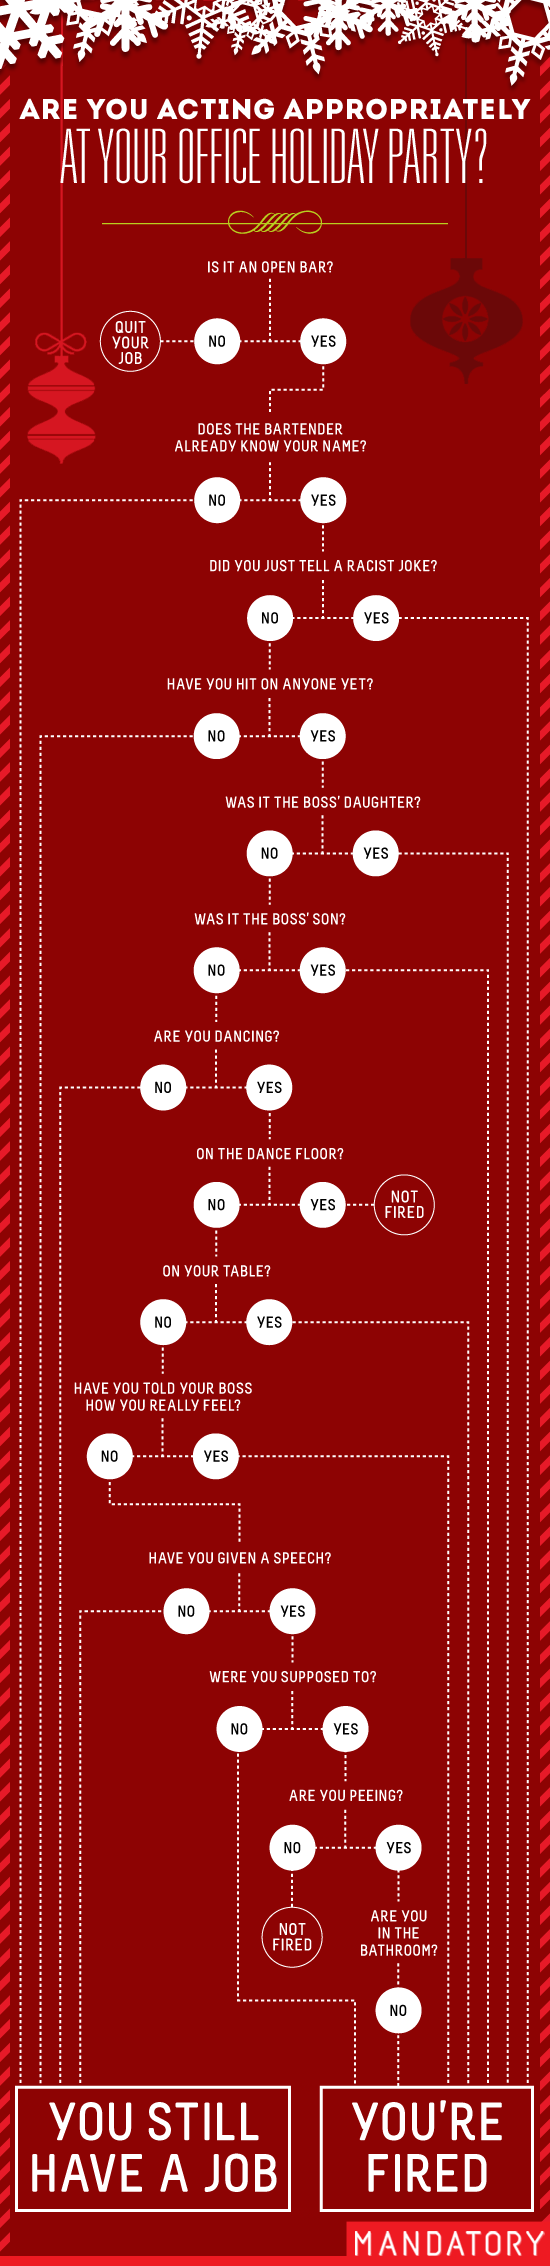 are you acting appropriately at your office holiday party, office holiday party, flowchart